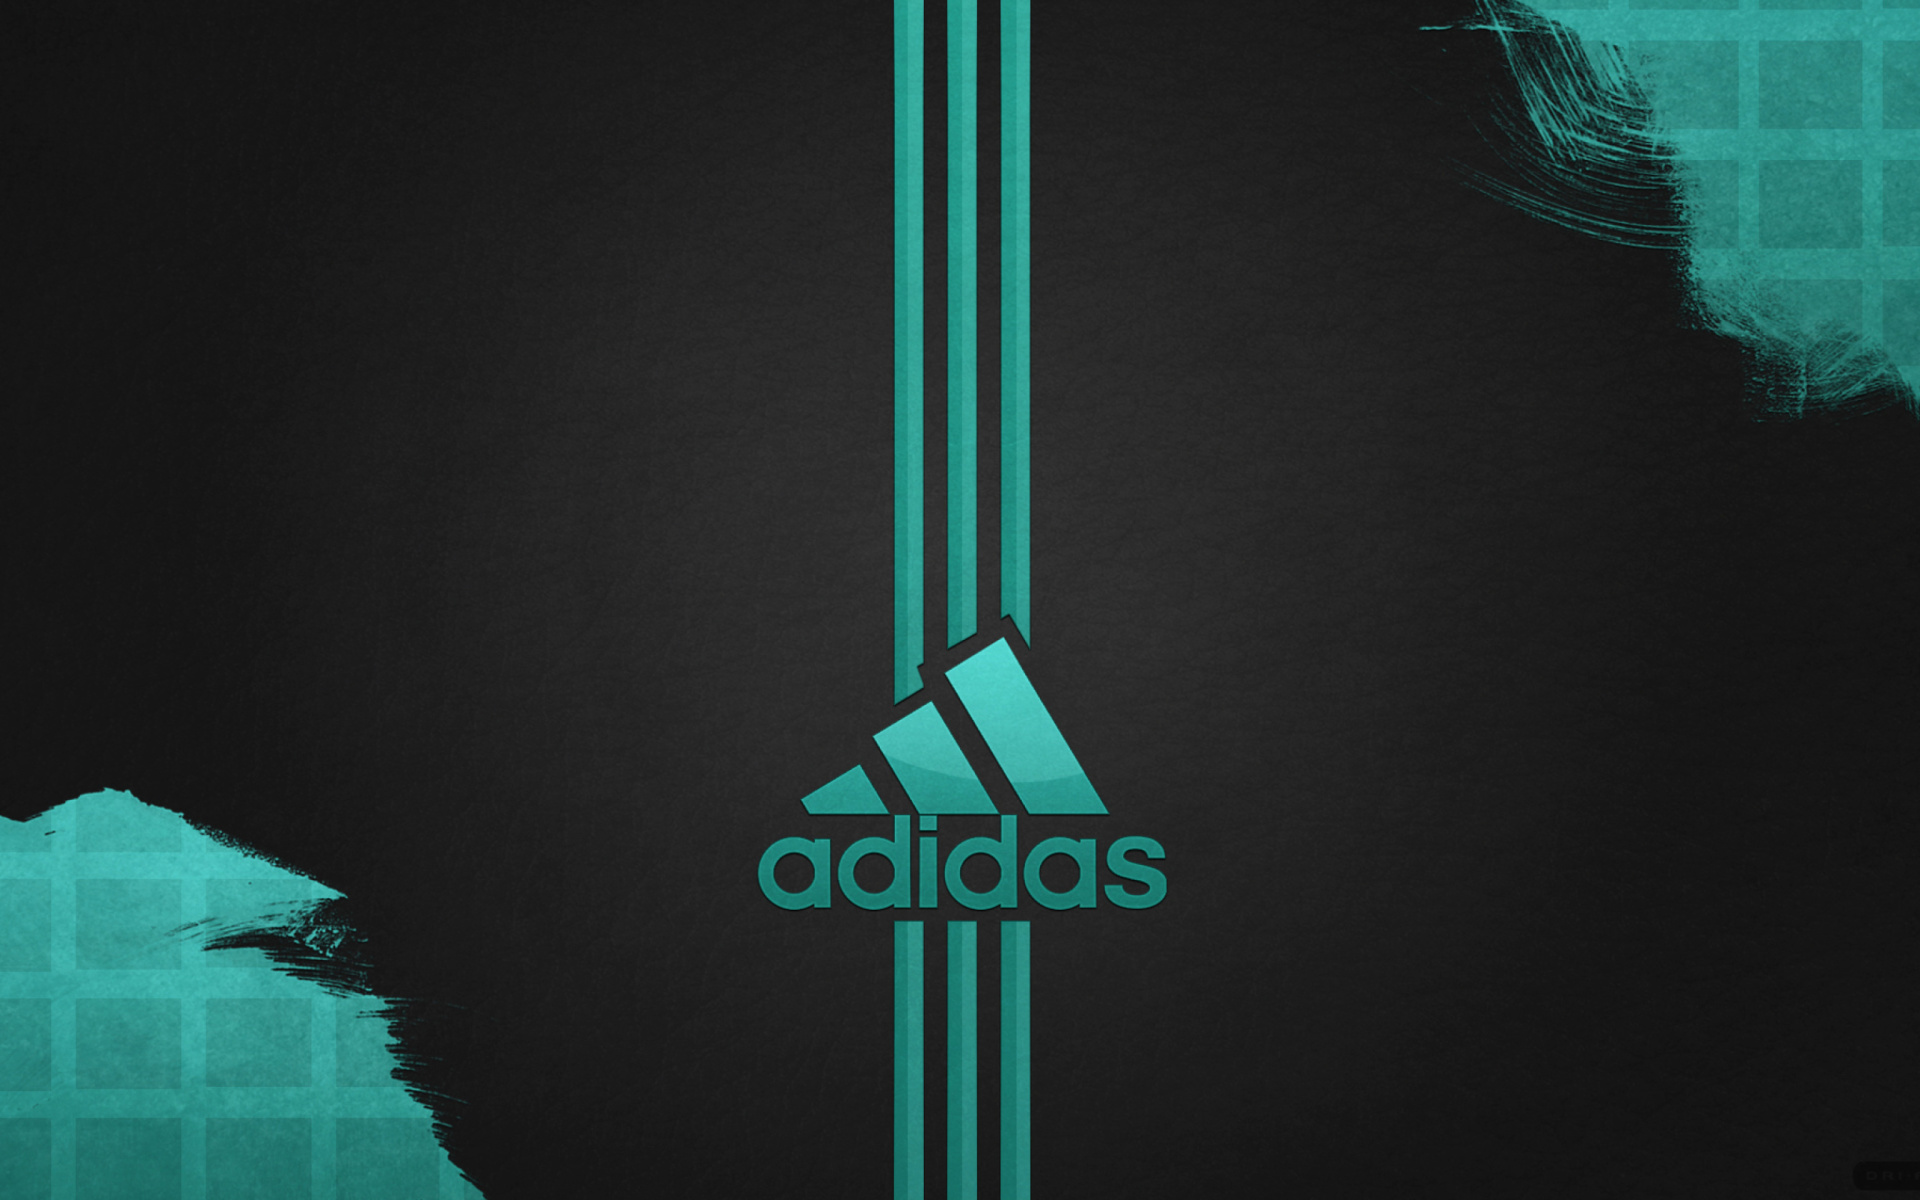 adidas originals logo wallpaper wallpapersafari